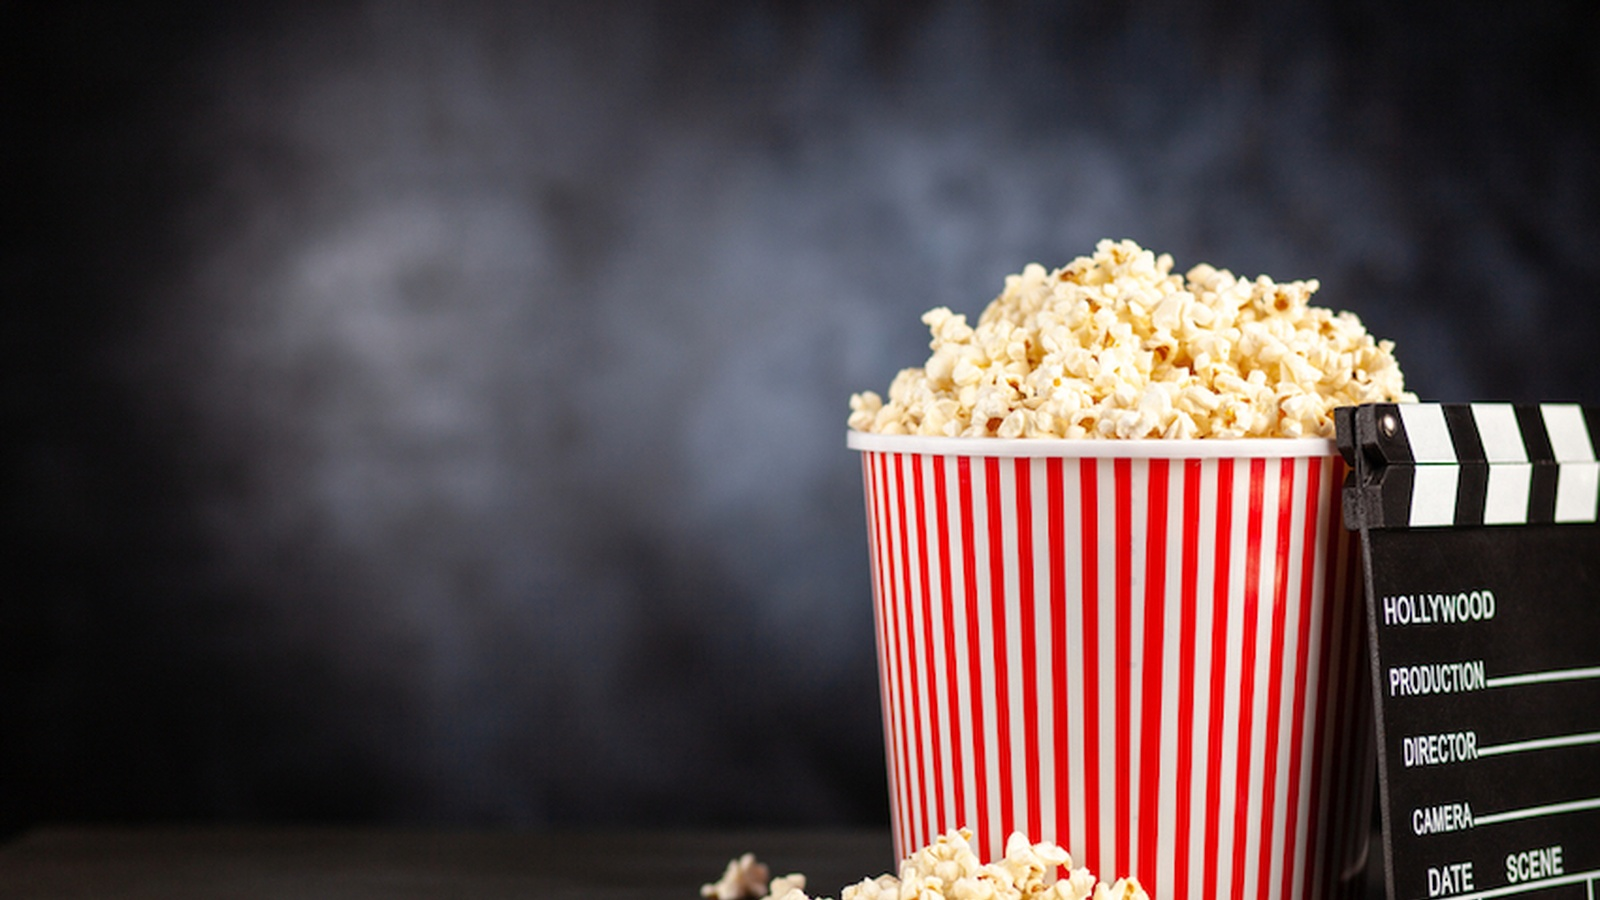 10 Most Popular Health Films of 2019